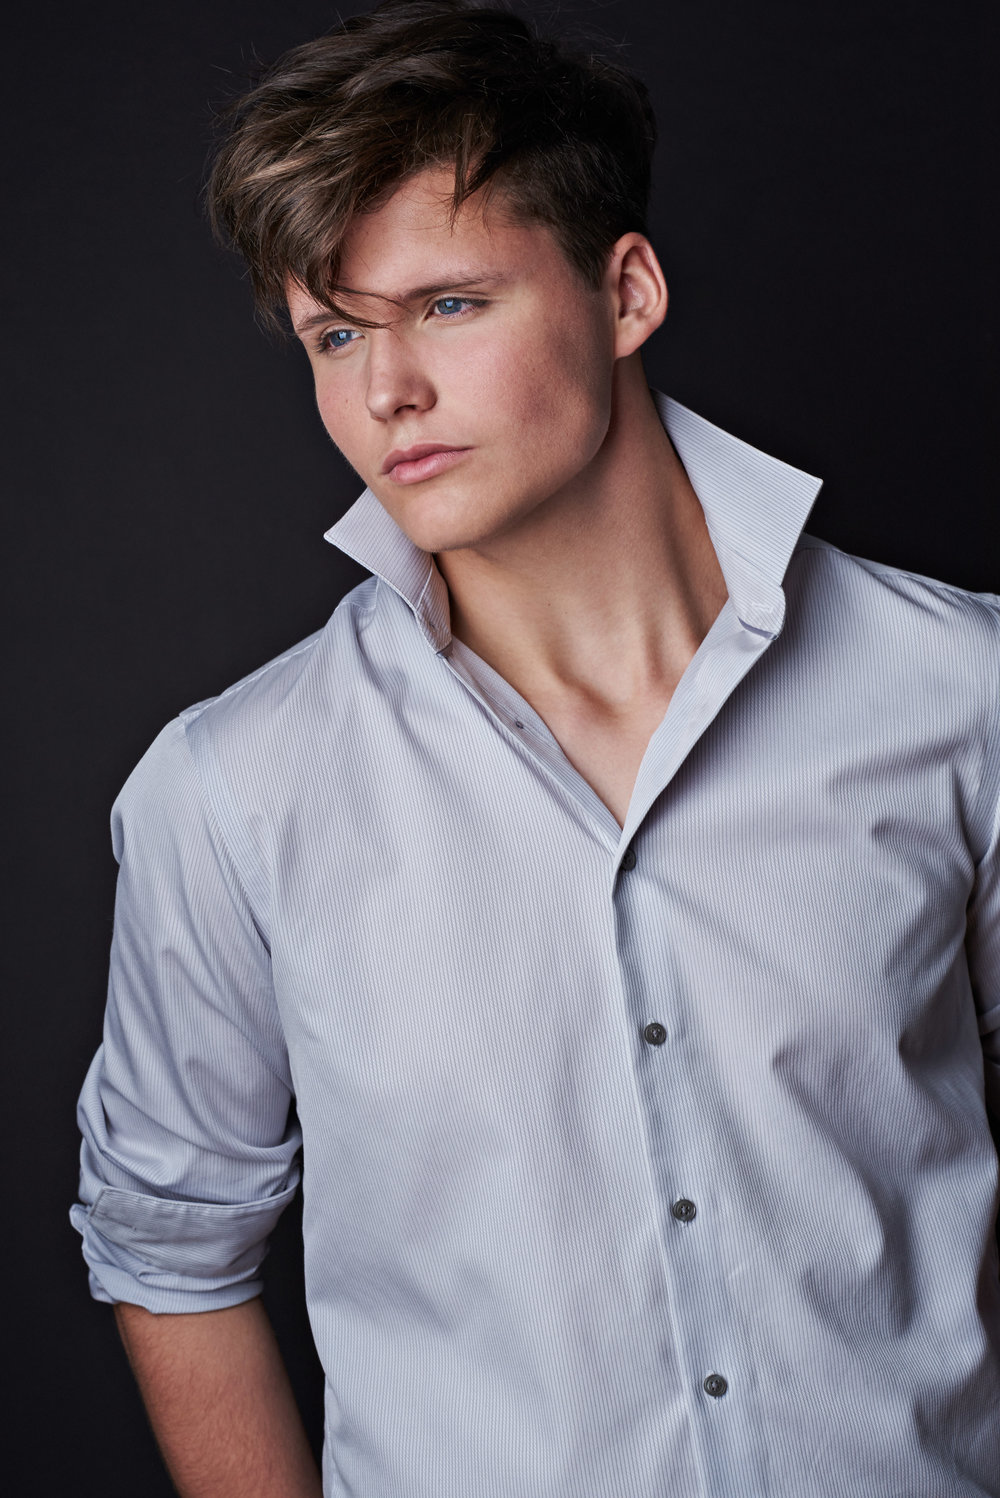 Marta-Hewson-Brayden-Schaefer-male-model-5904.jpg